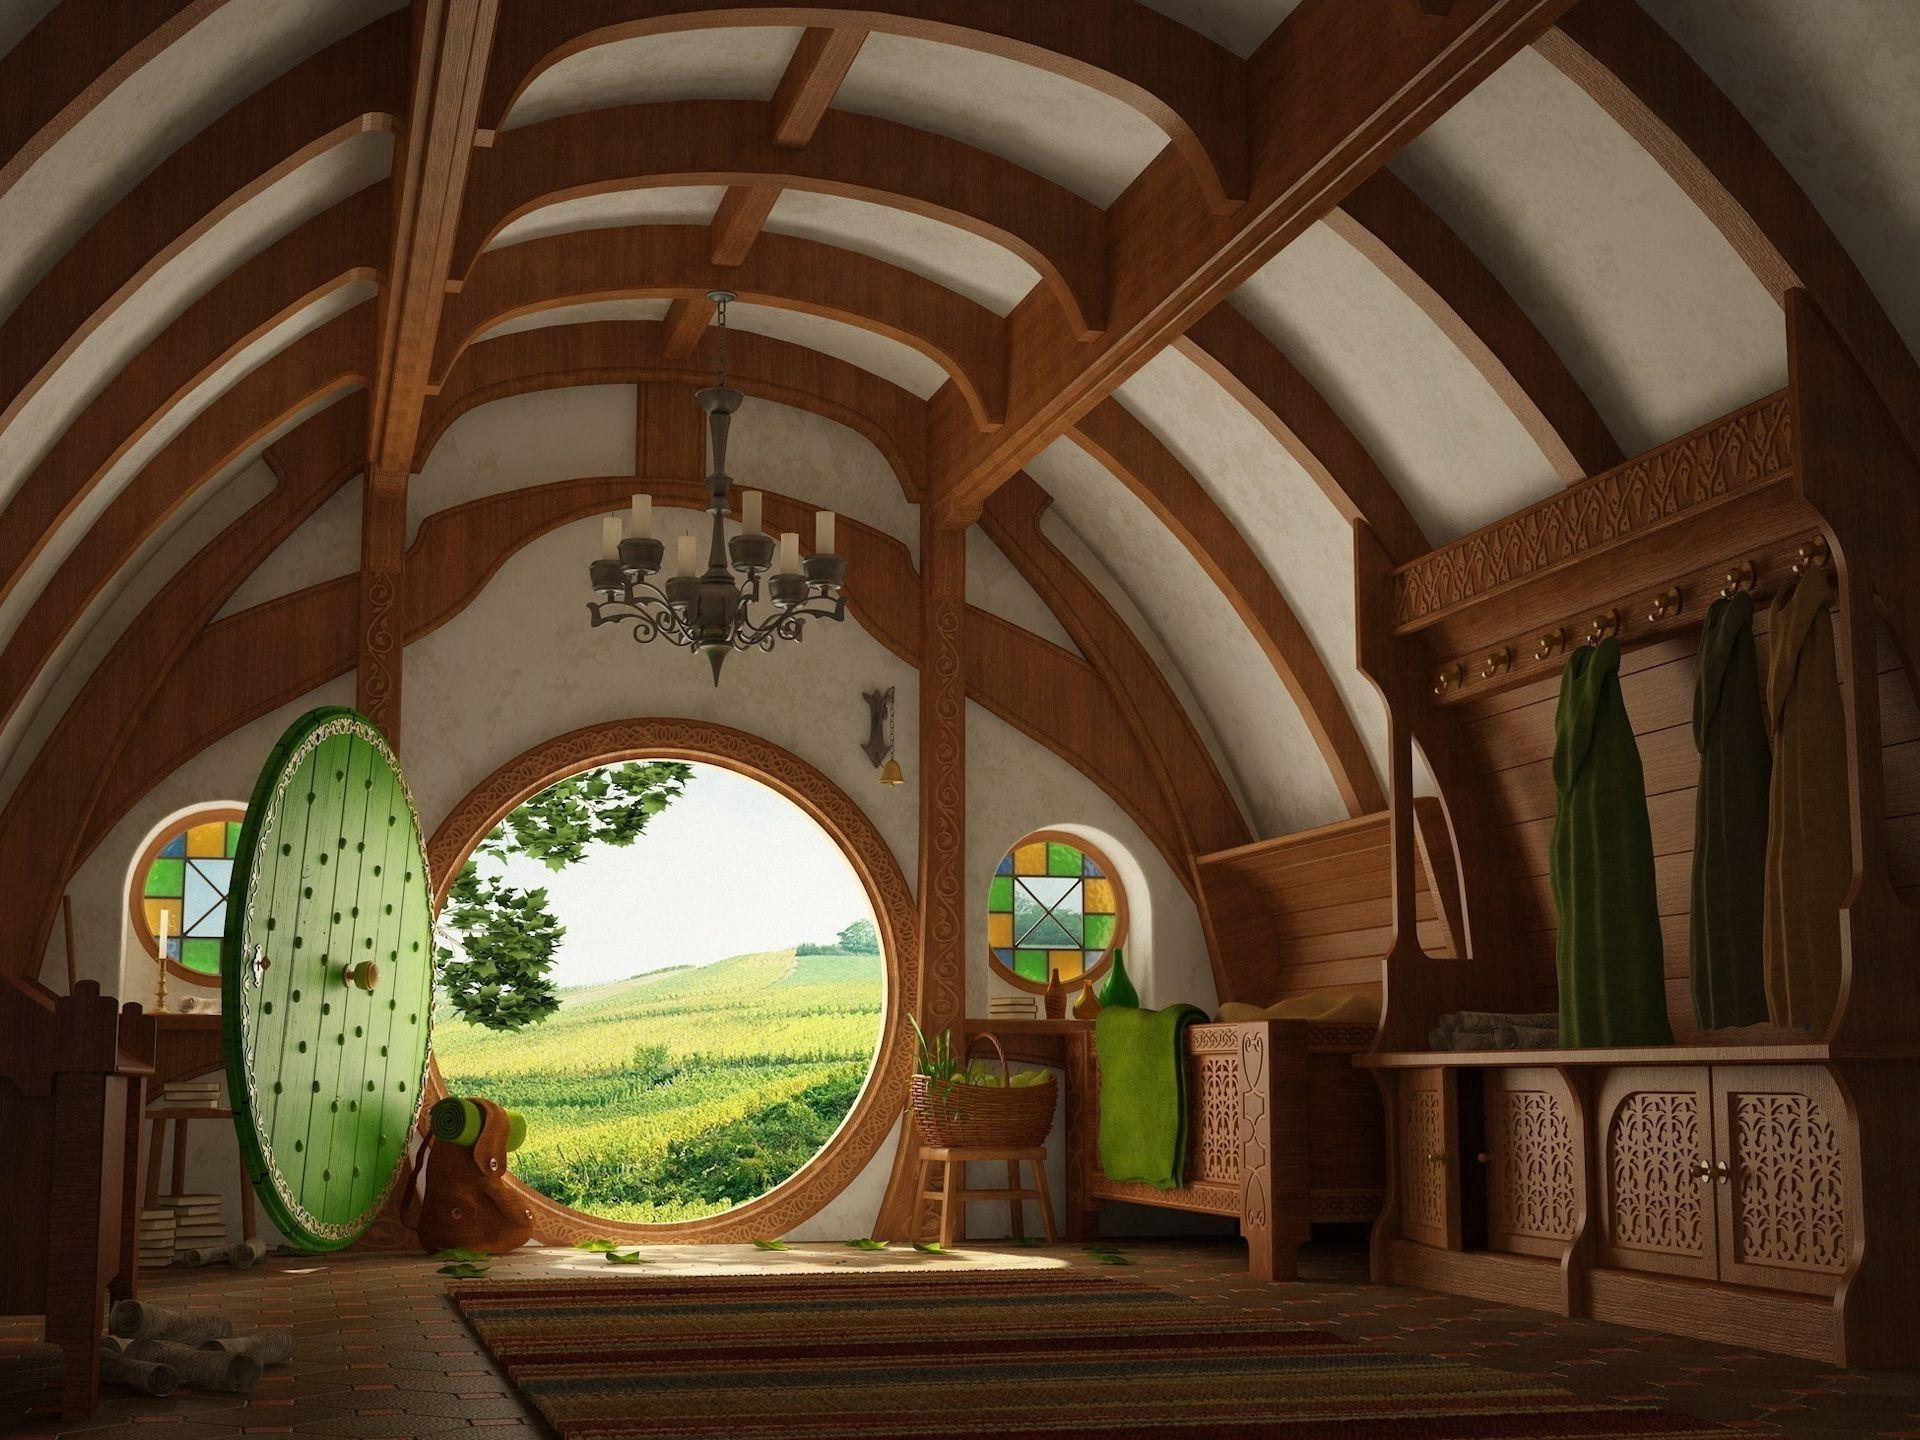 The hobbit Hobbiton the Shire middle earth. Android wallpapers for free